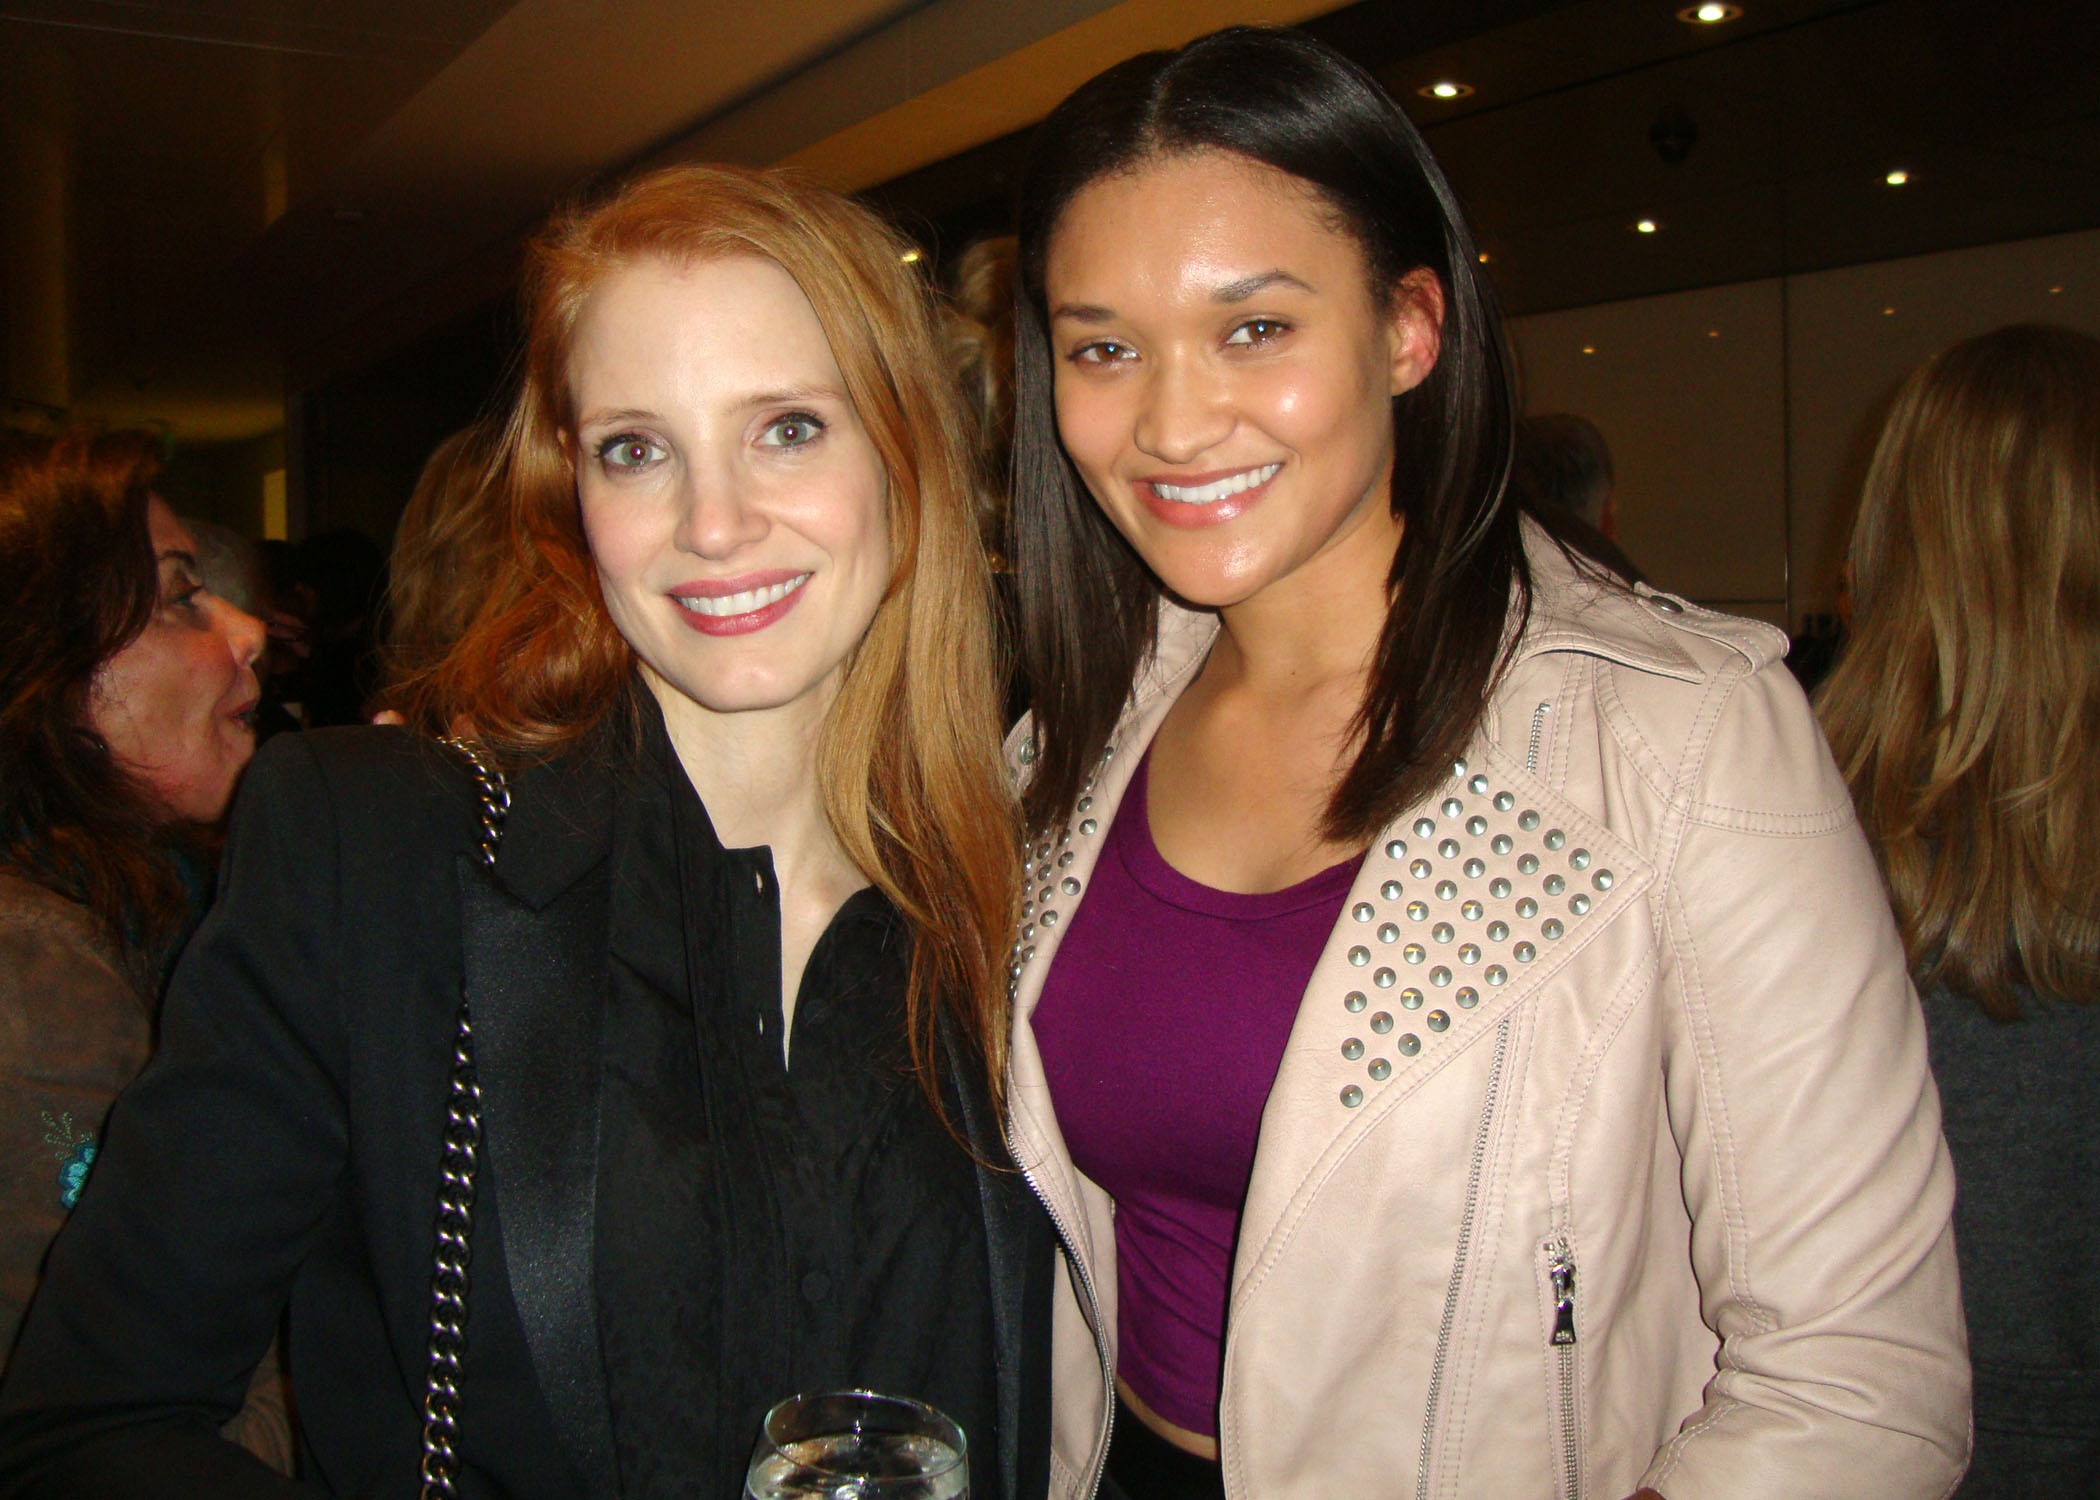 Etalvia Cashin and Jessica Chastain